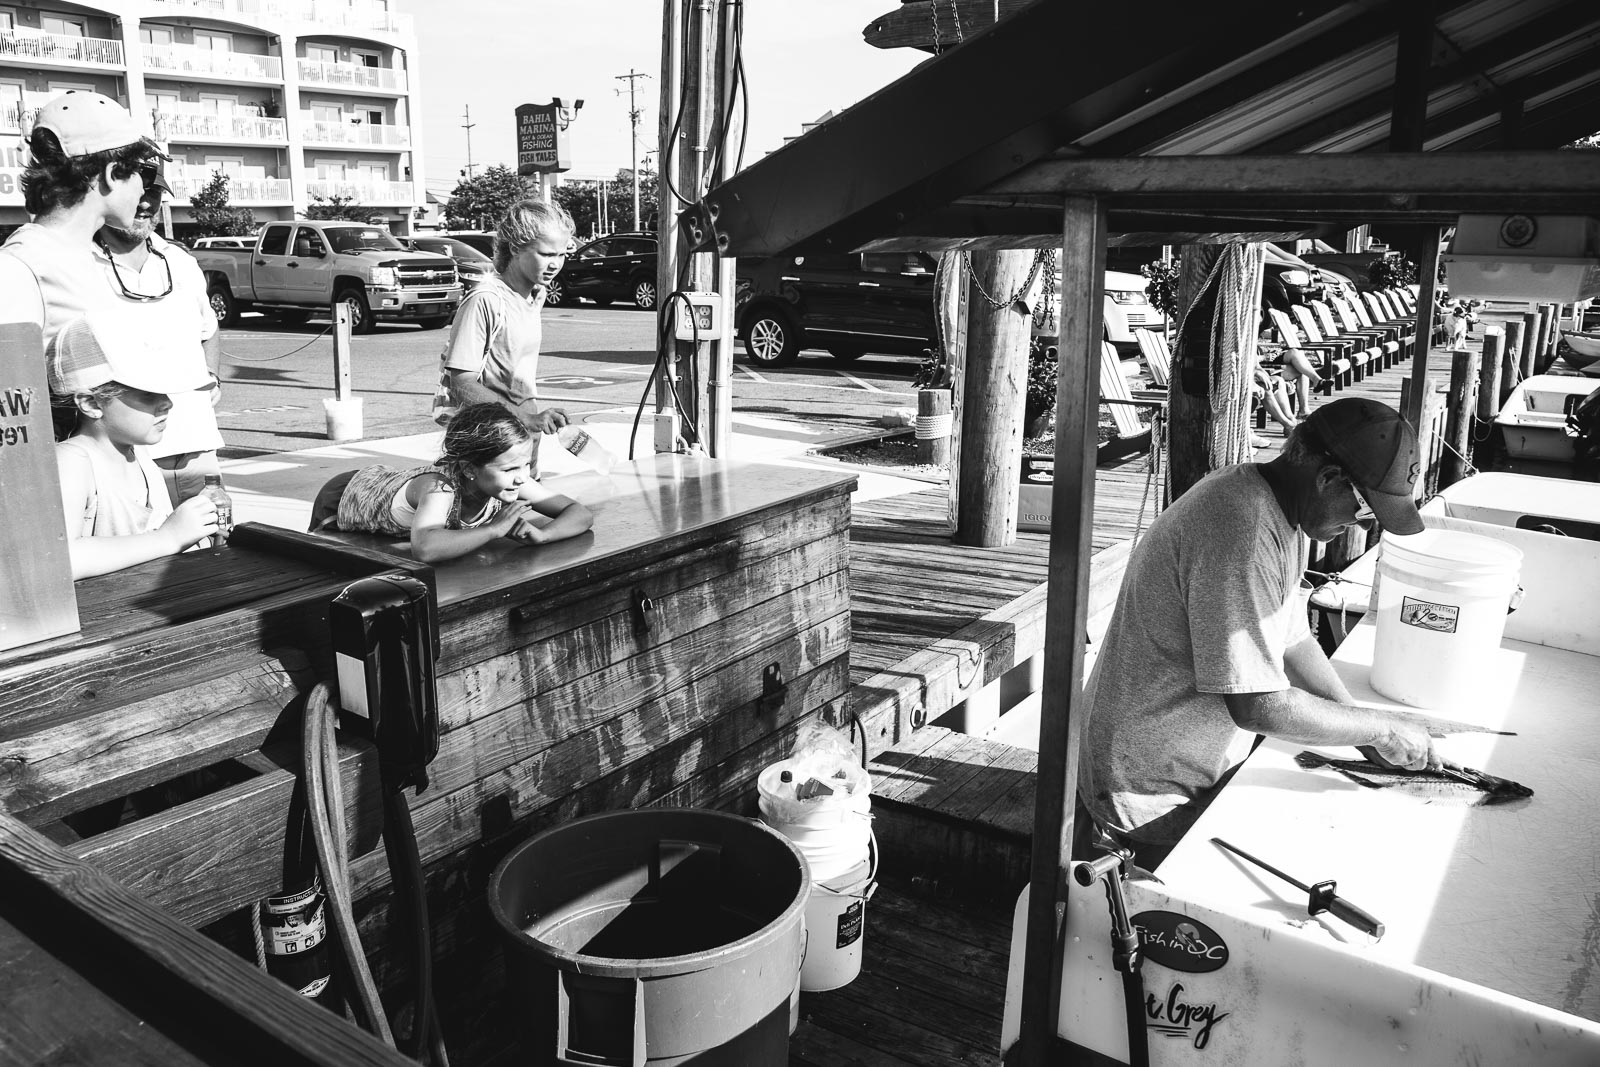 Black and white photo of people cleaning fish during a family photo session